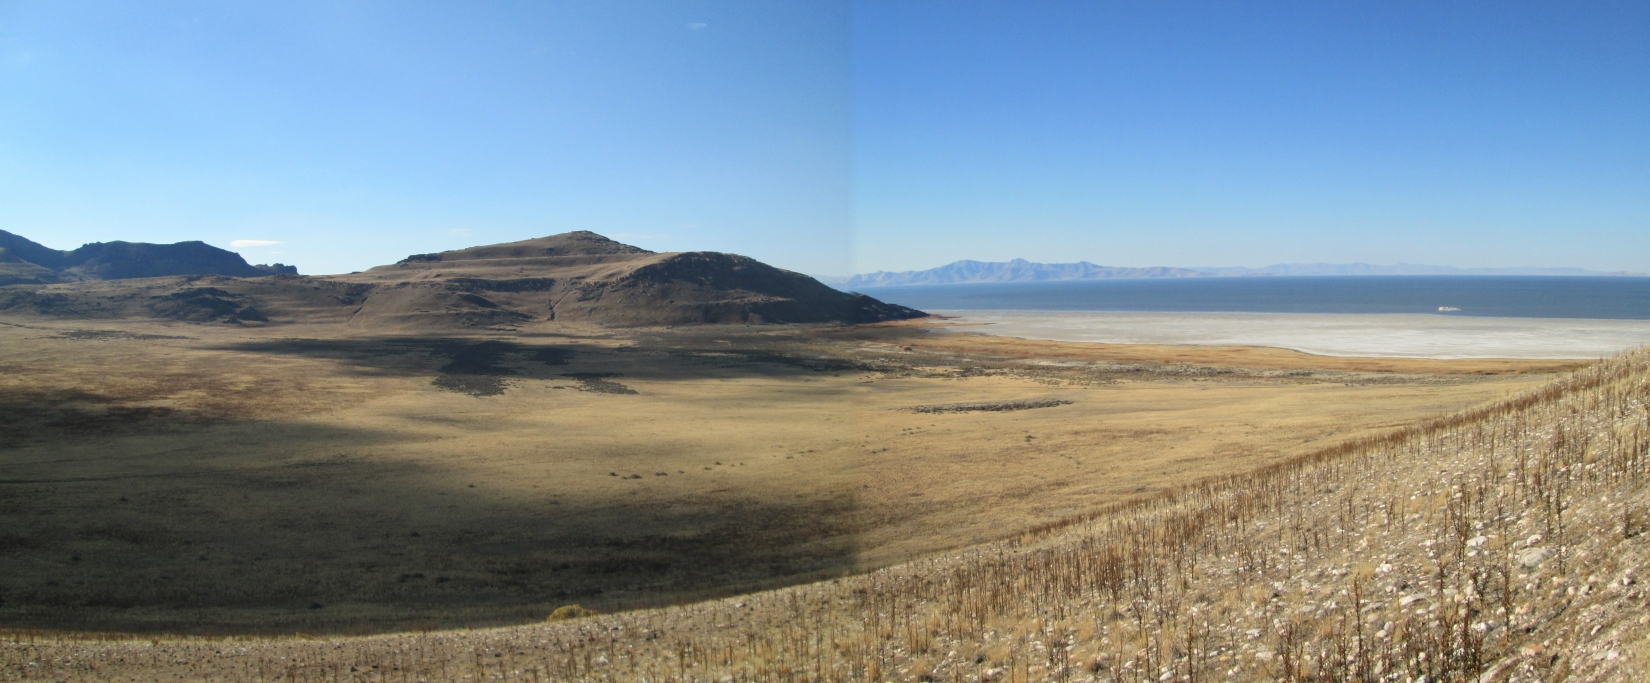 More rocks, salt, and the Great Salt Lake from Antelope Island